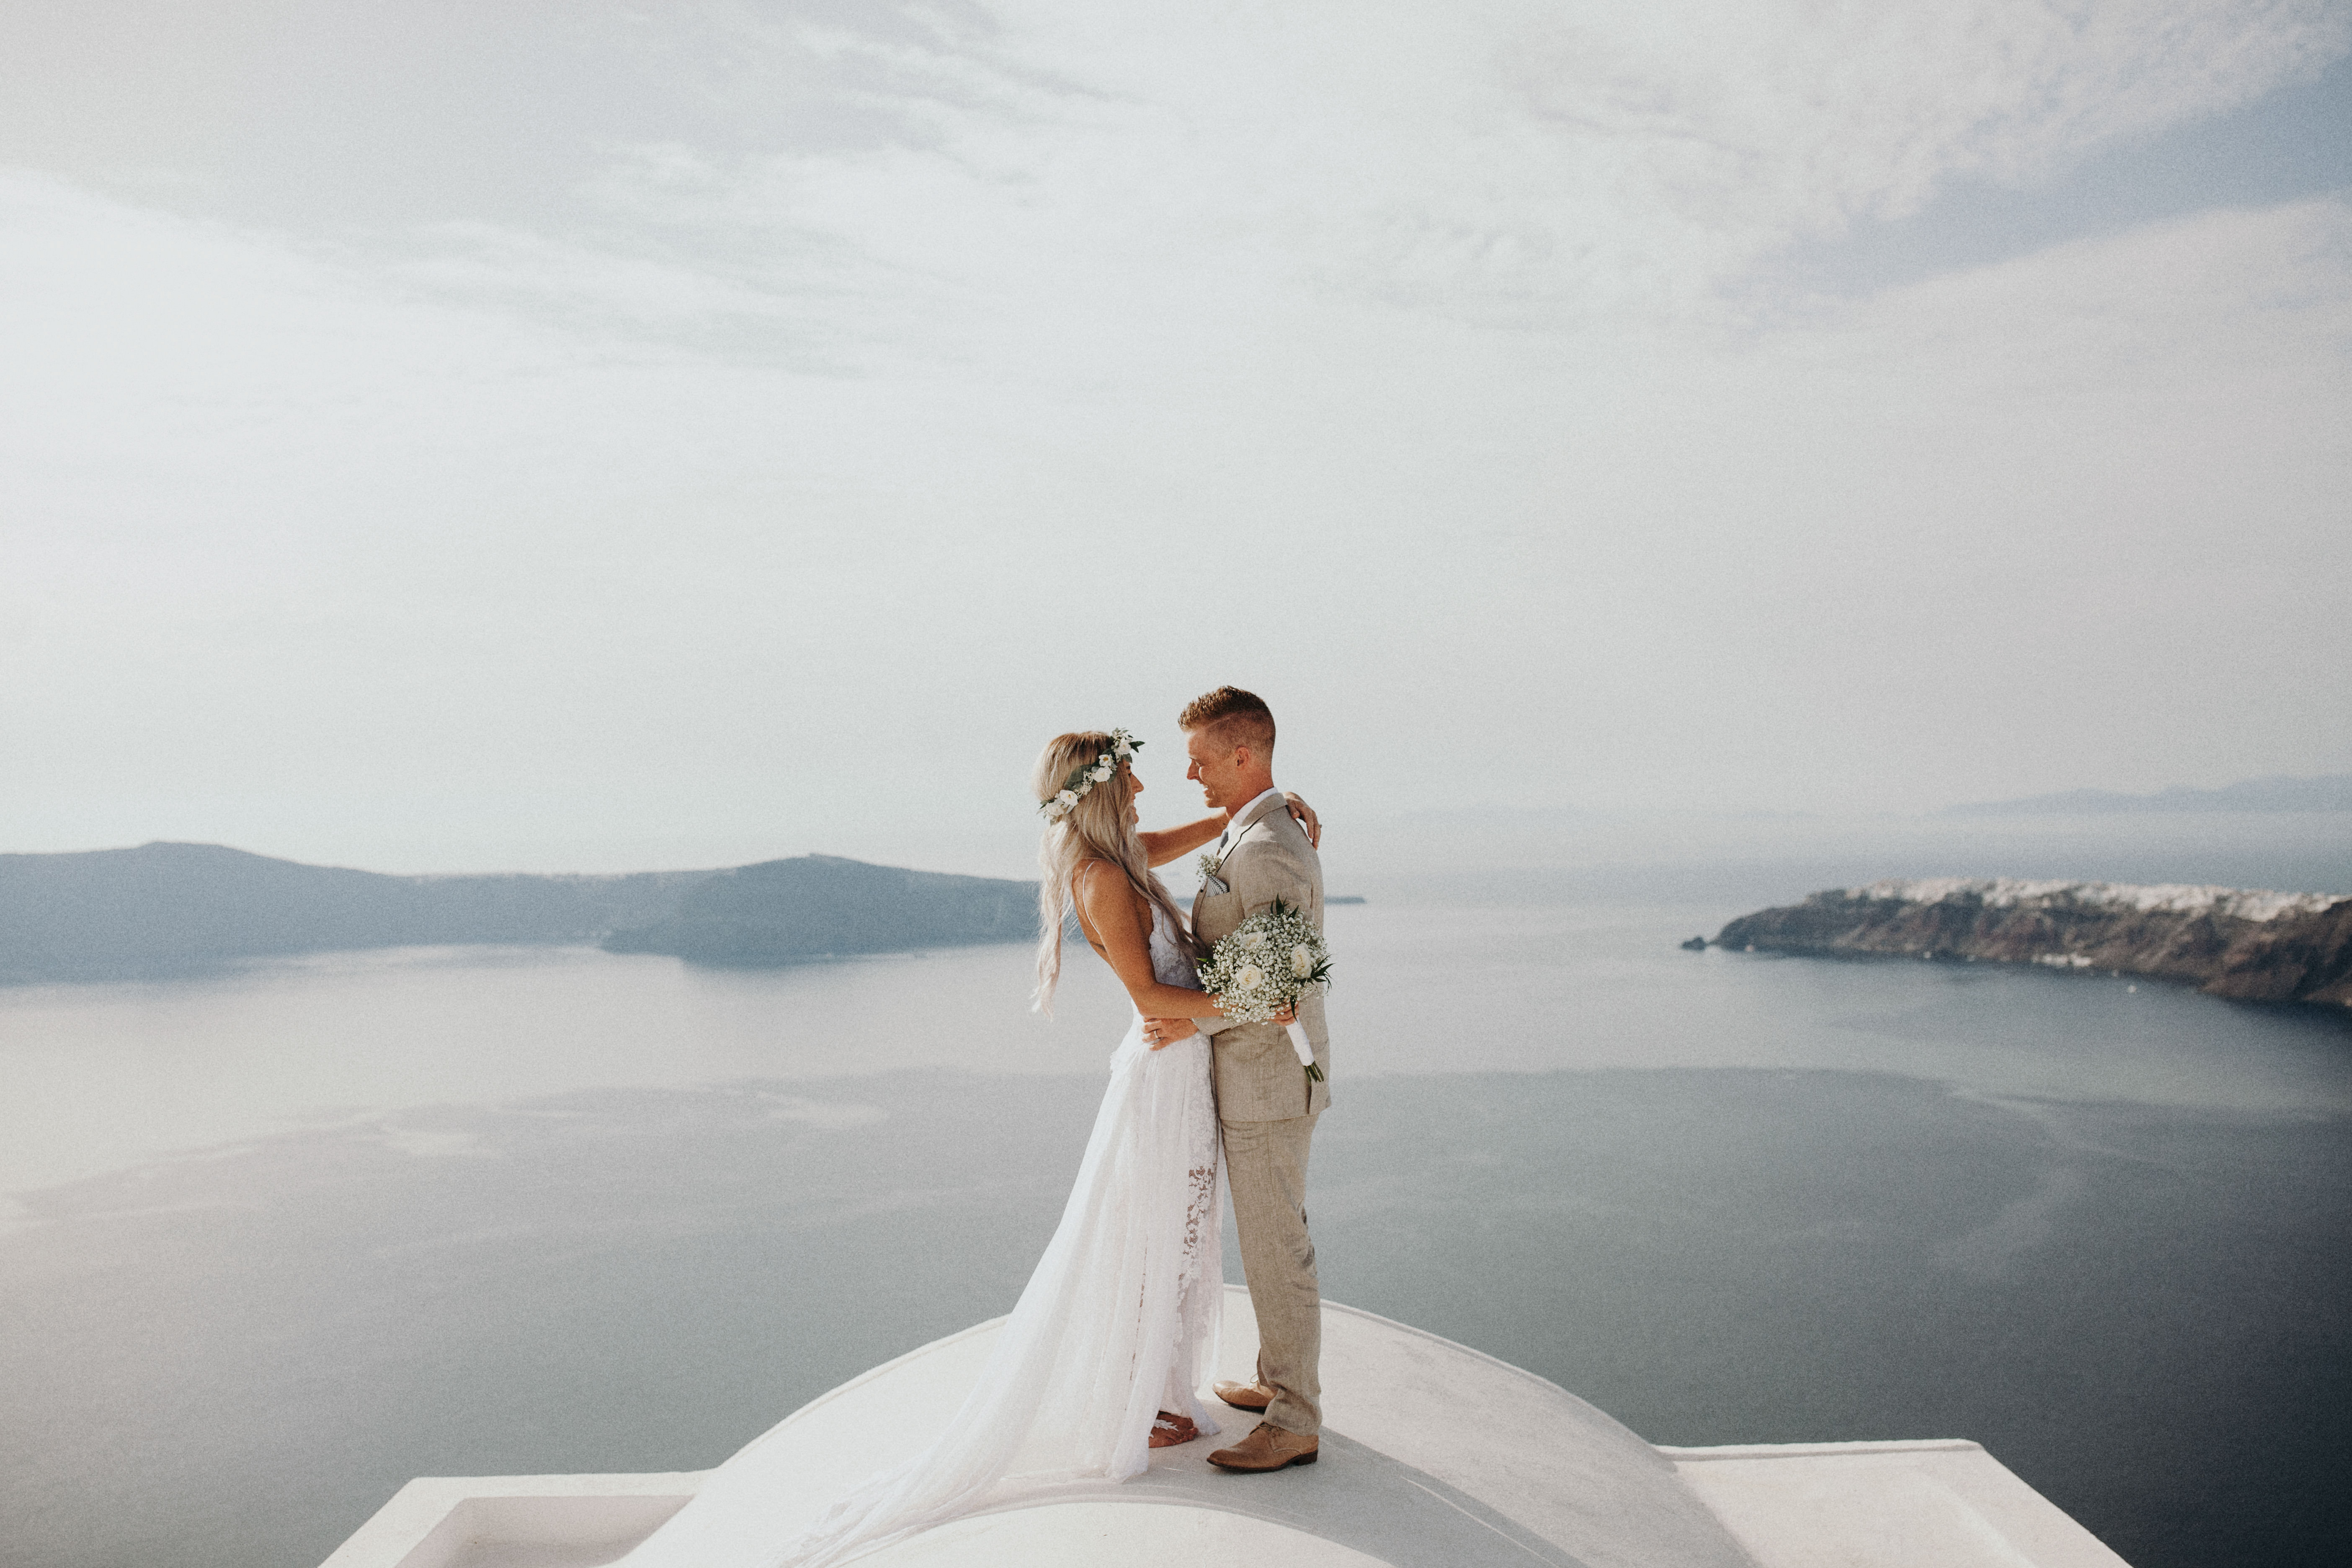 Categories: Weddings-Real Wedding: Emily + Tate - Photography by Jordan Voth